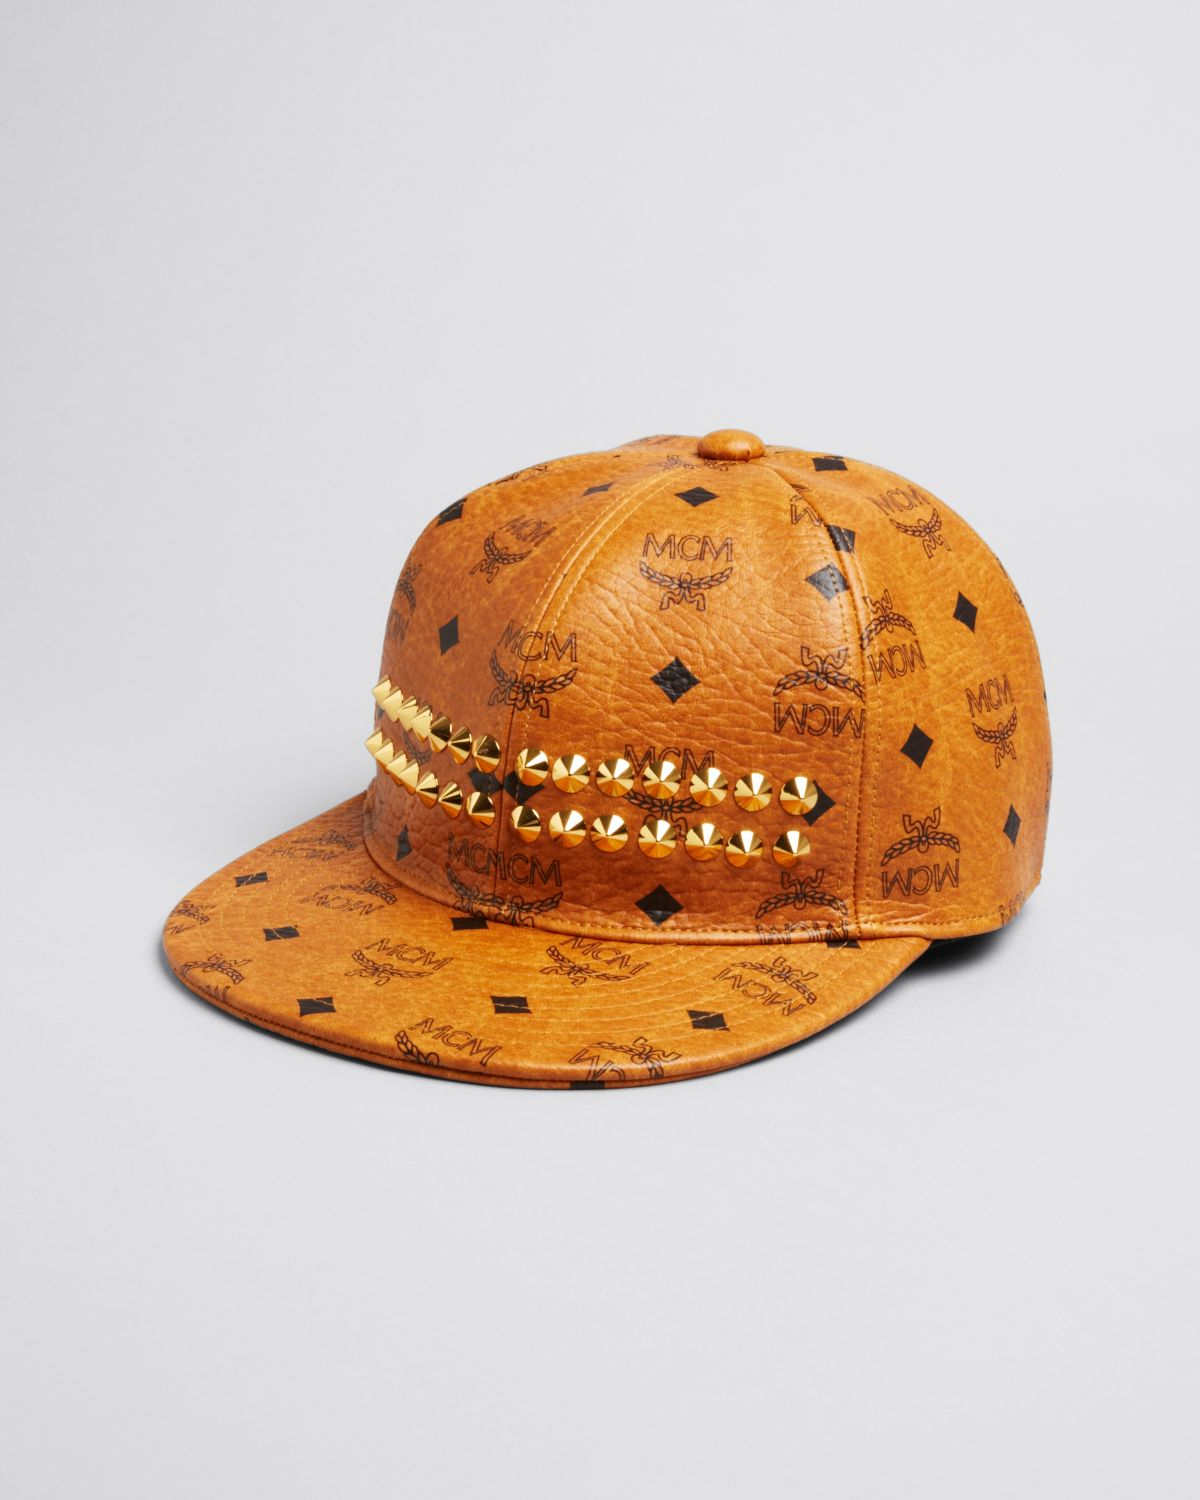 ... france lyst mcm studded logo cap in brown for men 01cb7 a7ec5 cheap  authentic burberry reversible bucket ... 4e9b52bb2d94